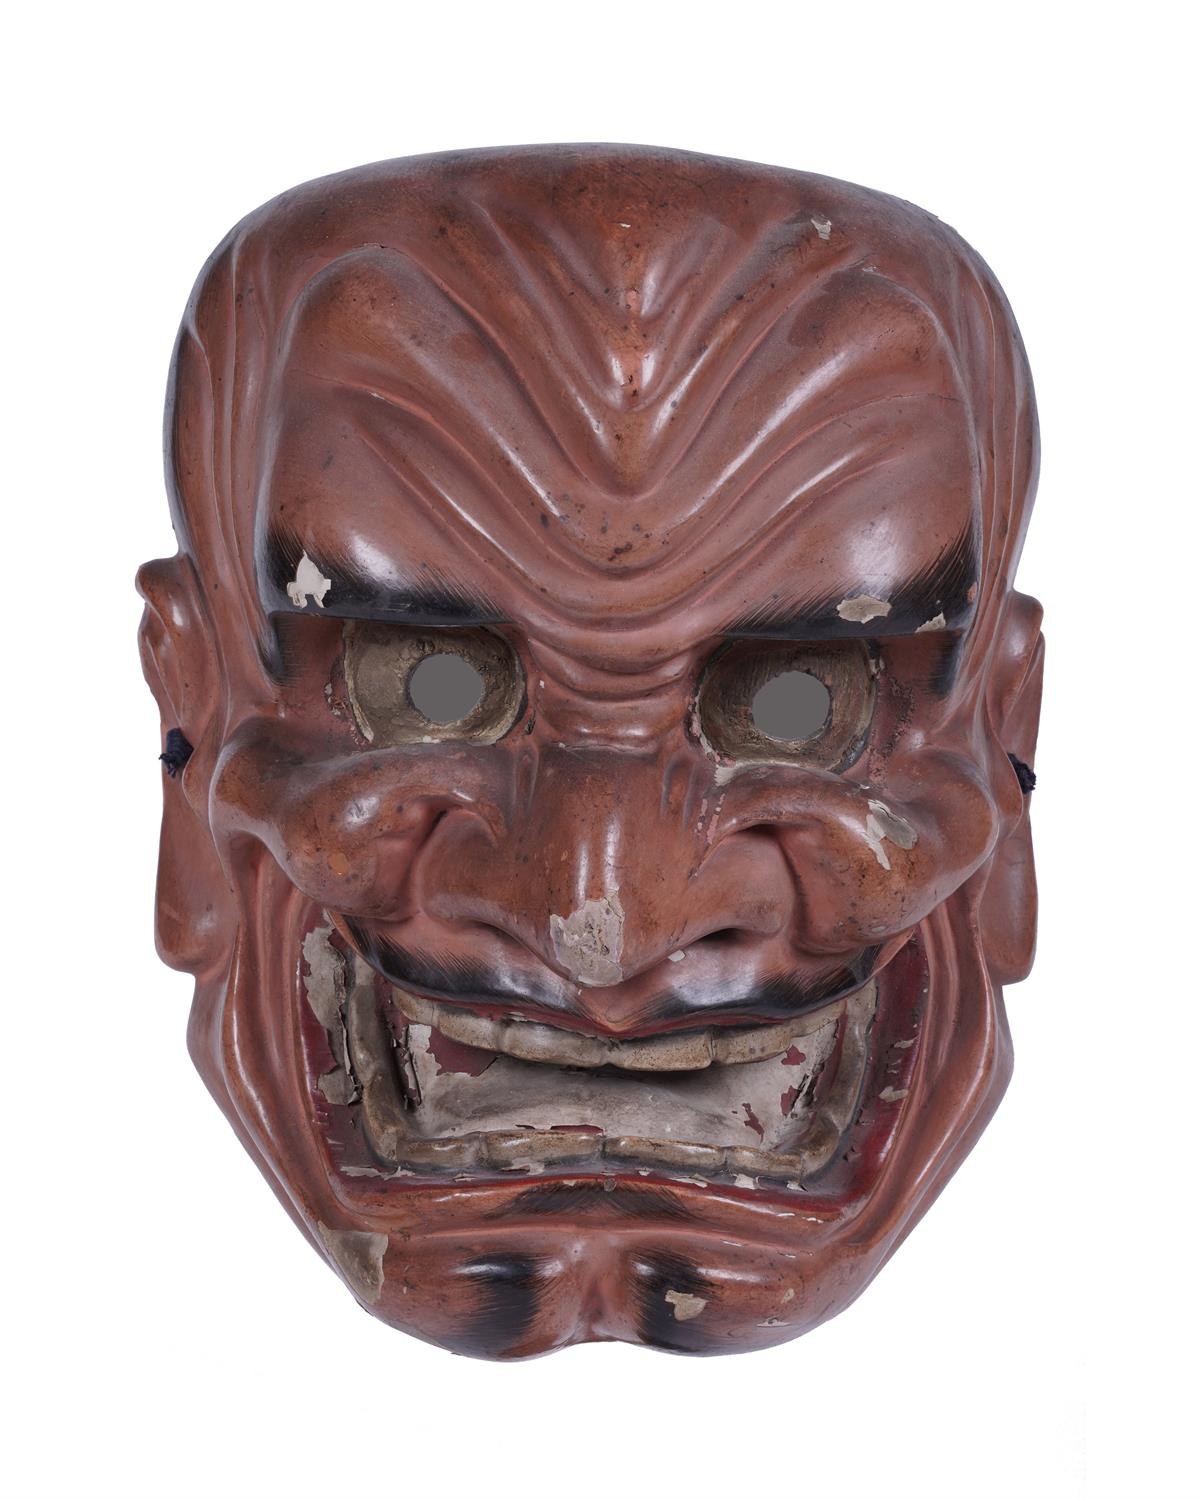 .A SIGNED RED LACQUERED WOODEN MASK Japan, 19th century The inner part bearing a signature. H: 26, - Image 4 of 6